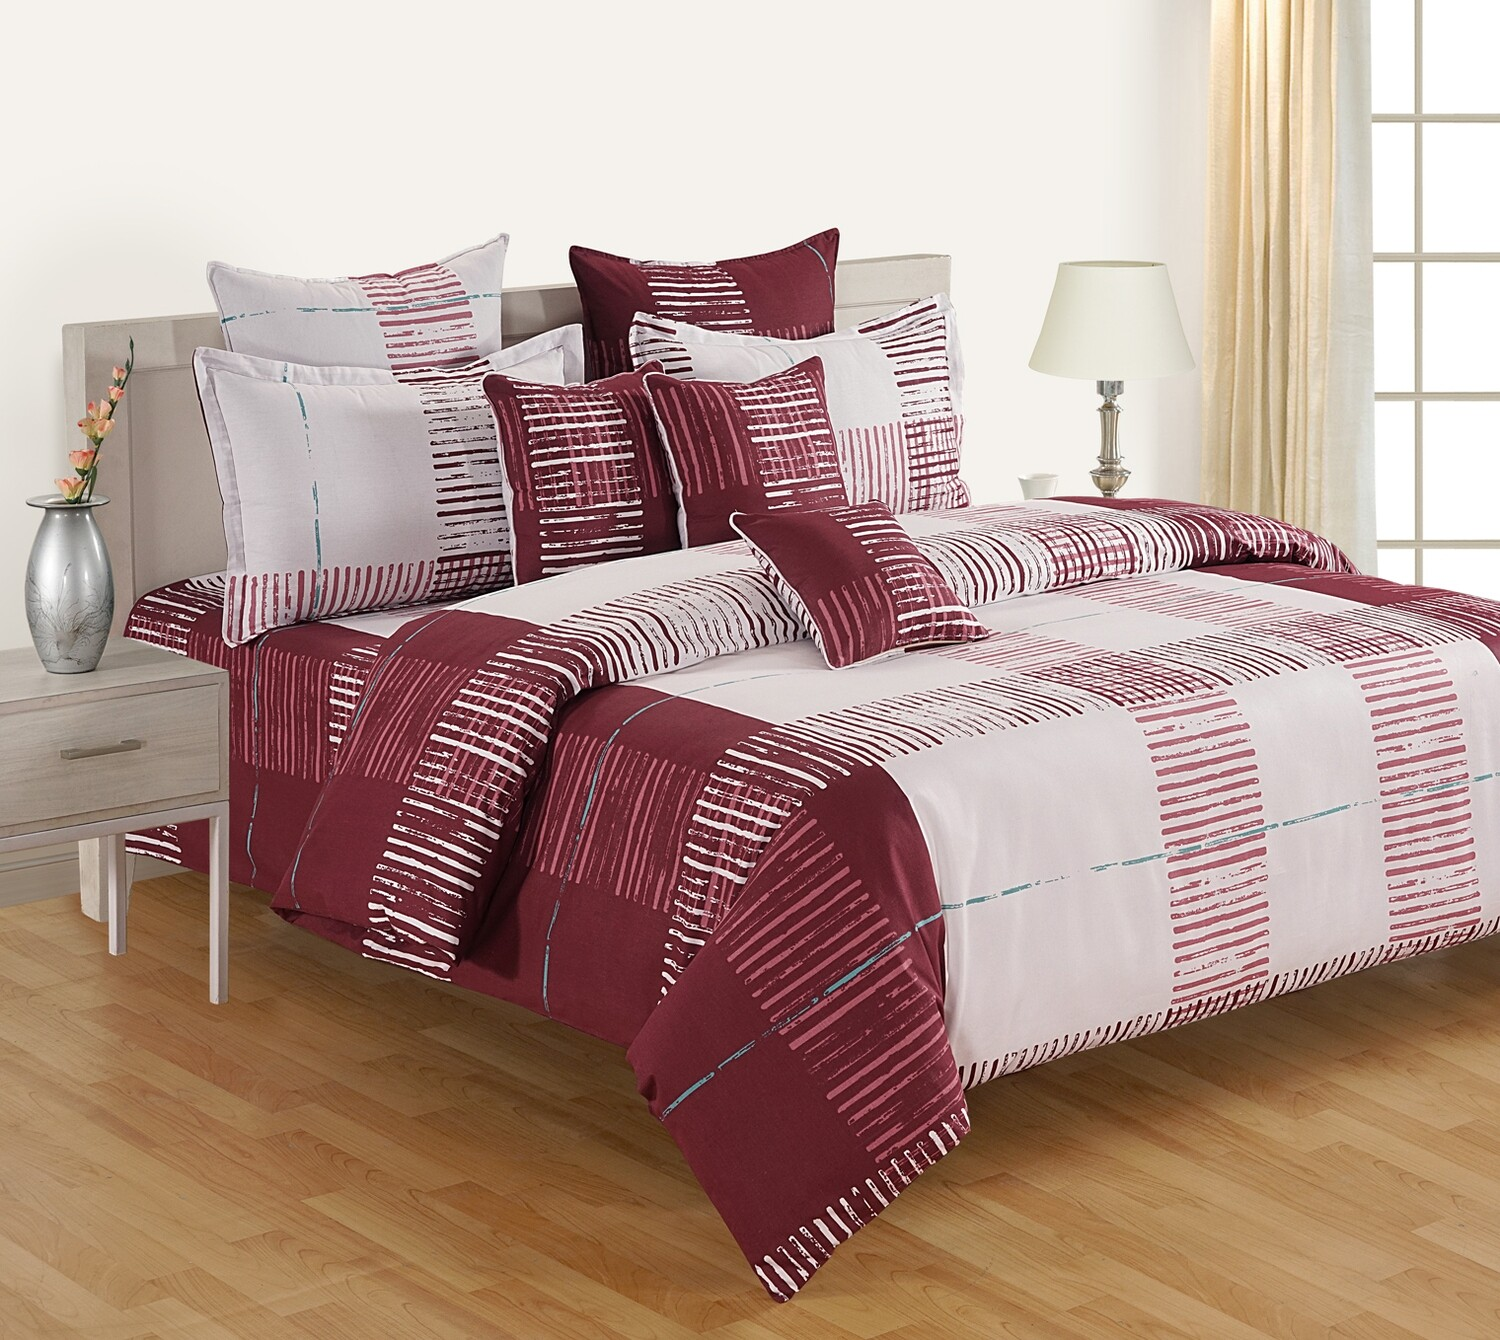 Swayam Maroon White Lines 120 TC Cotton Double Bedsheet with 2 Pillow Covers